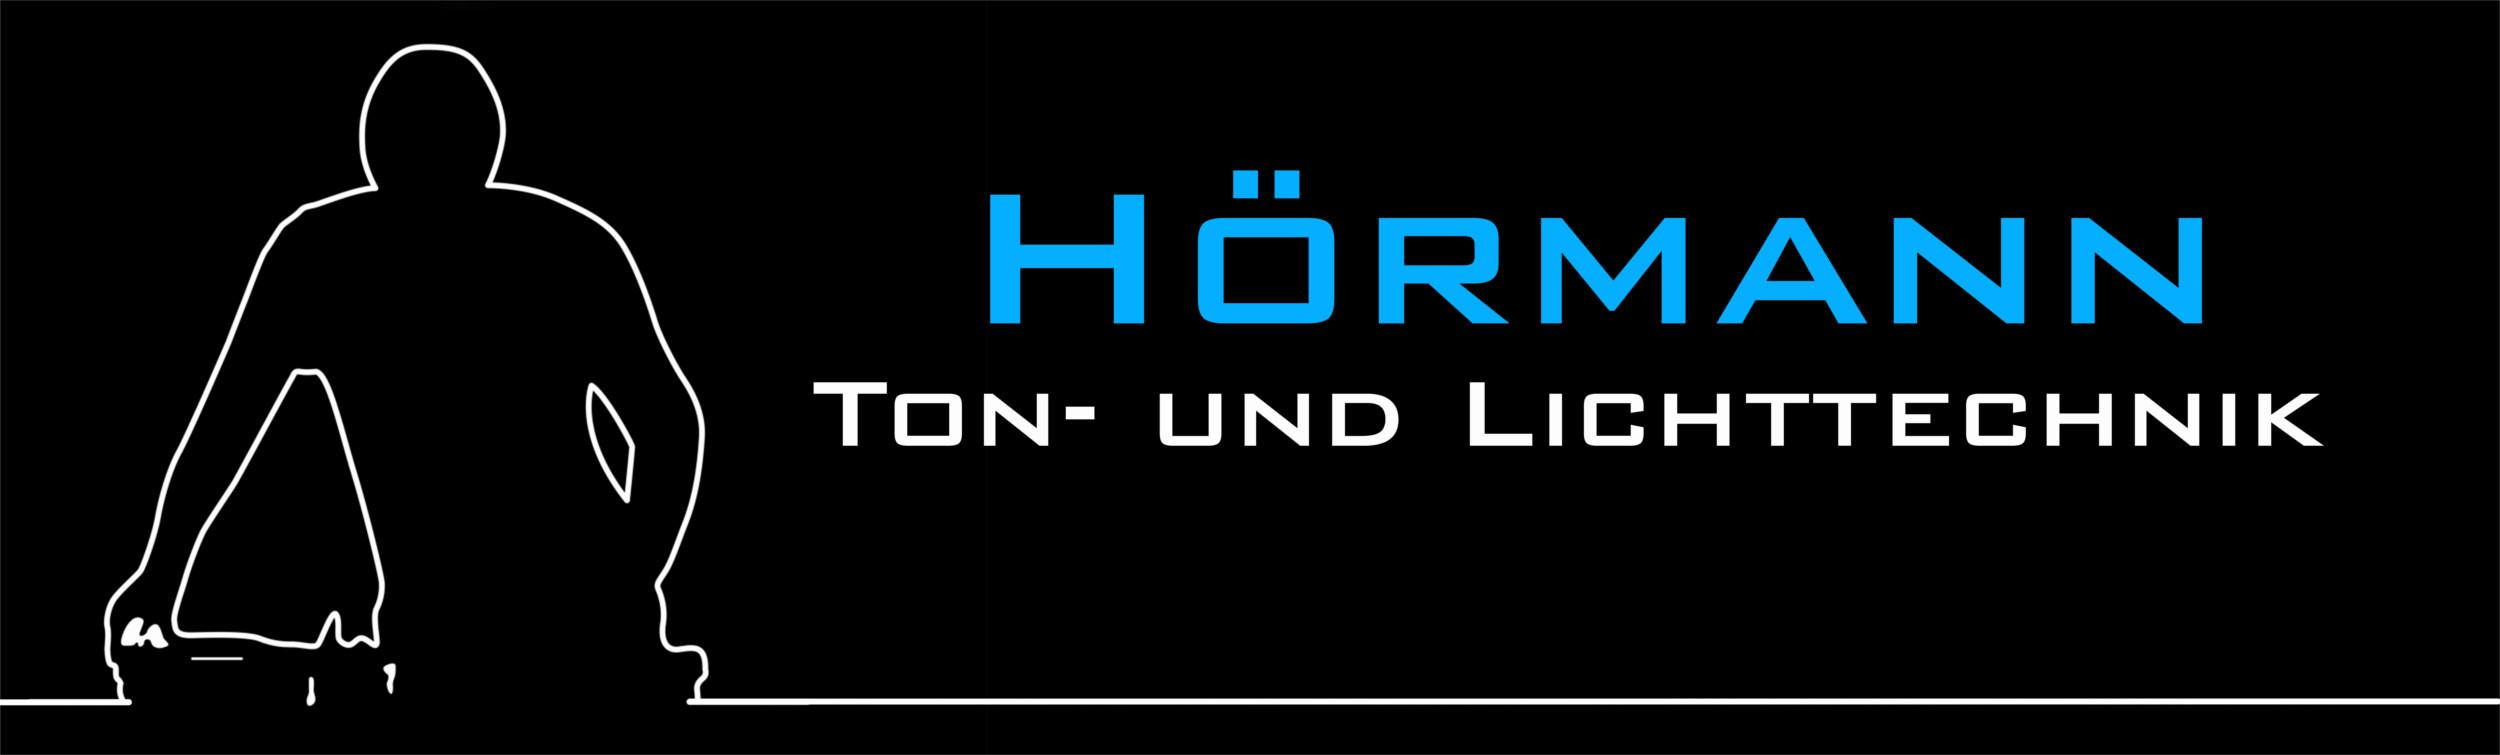 logo hoermann 2015